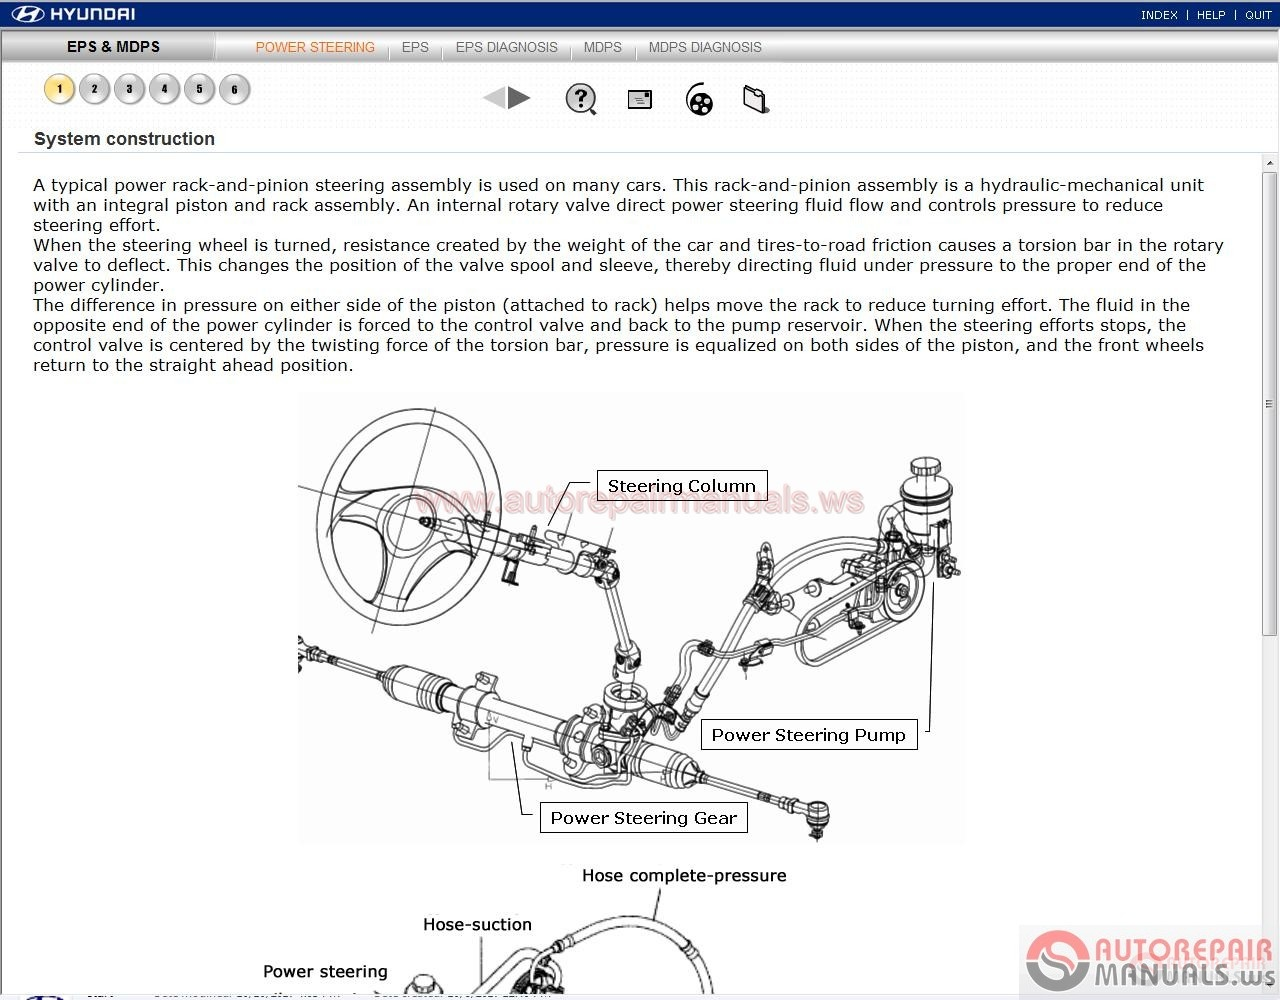 Hyundai Galloper Wiring Diagram Free For You Electrical 2013 Tucson Diagrams